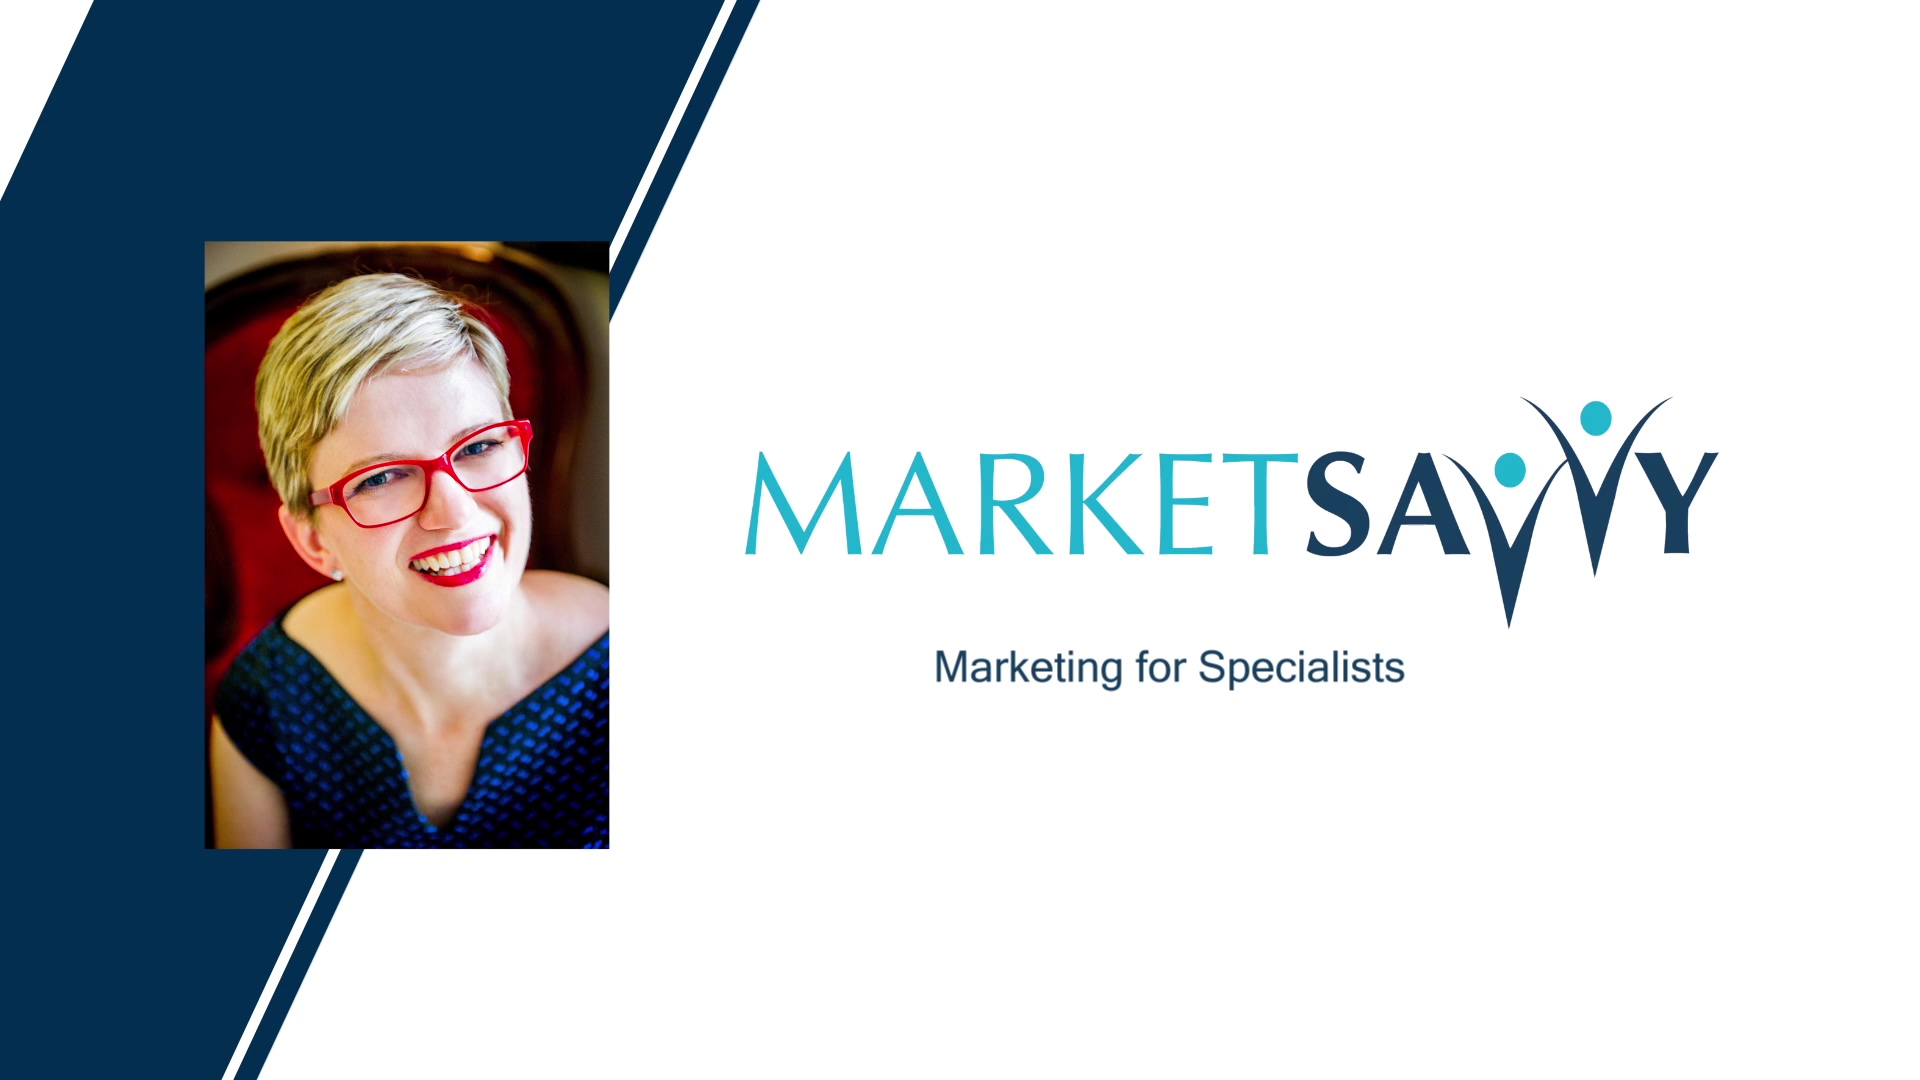 Market Savvy - Services for Specialists